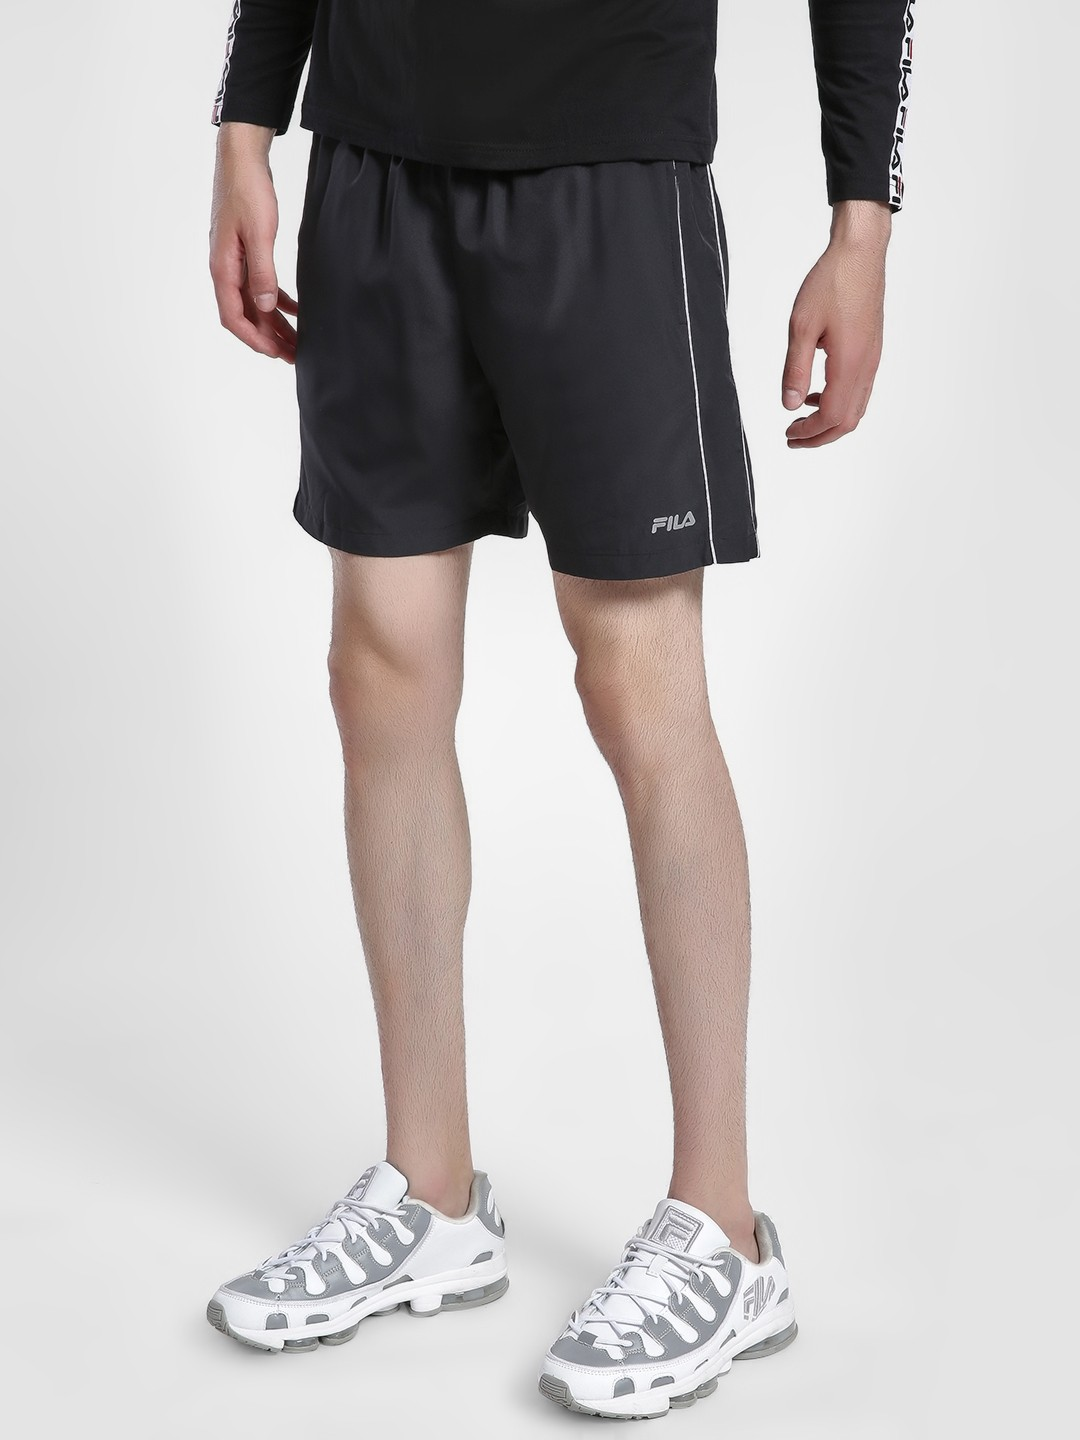 Fila Black Side Piping Detail Shorts 1